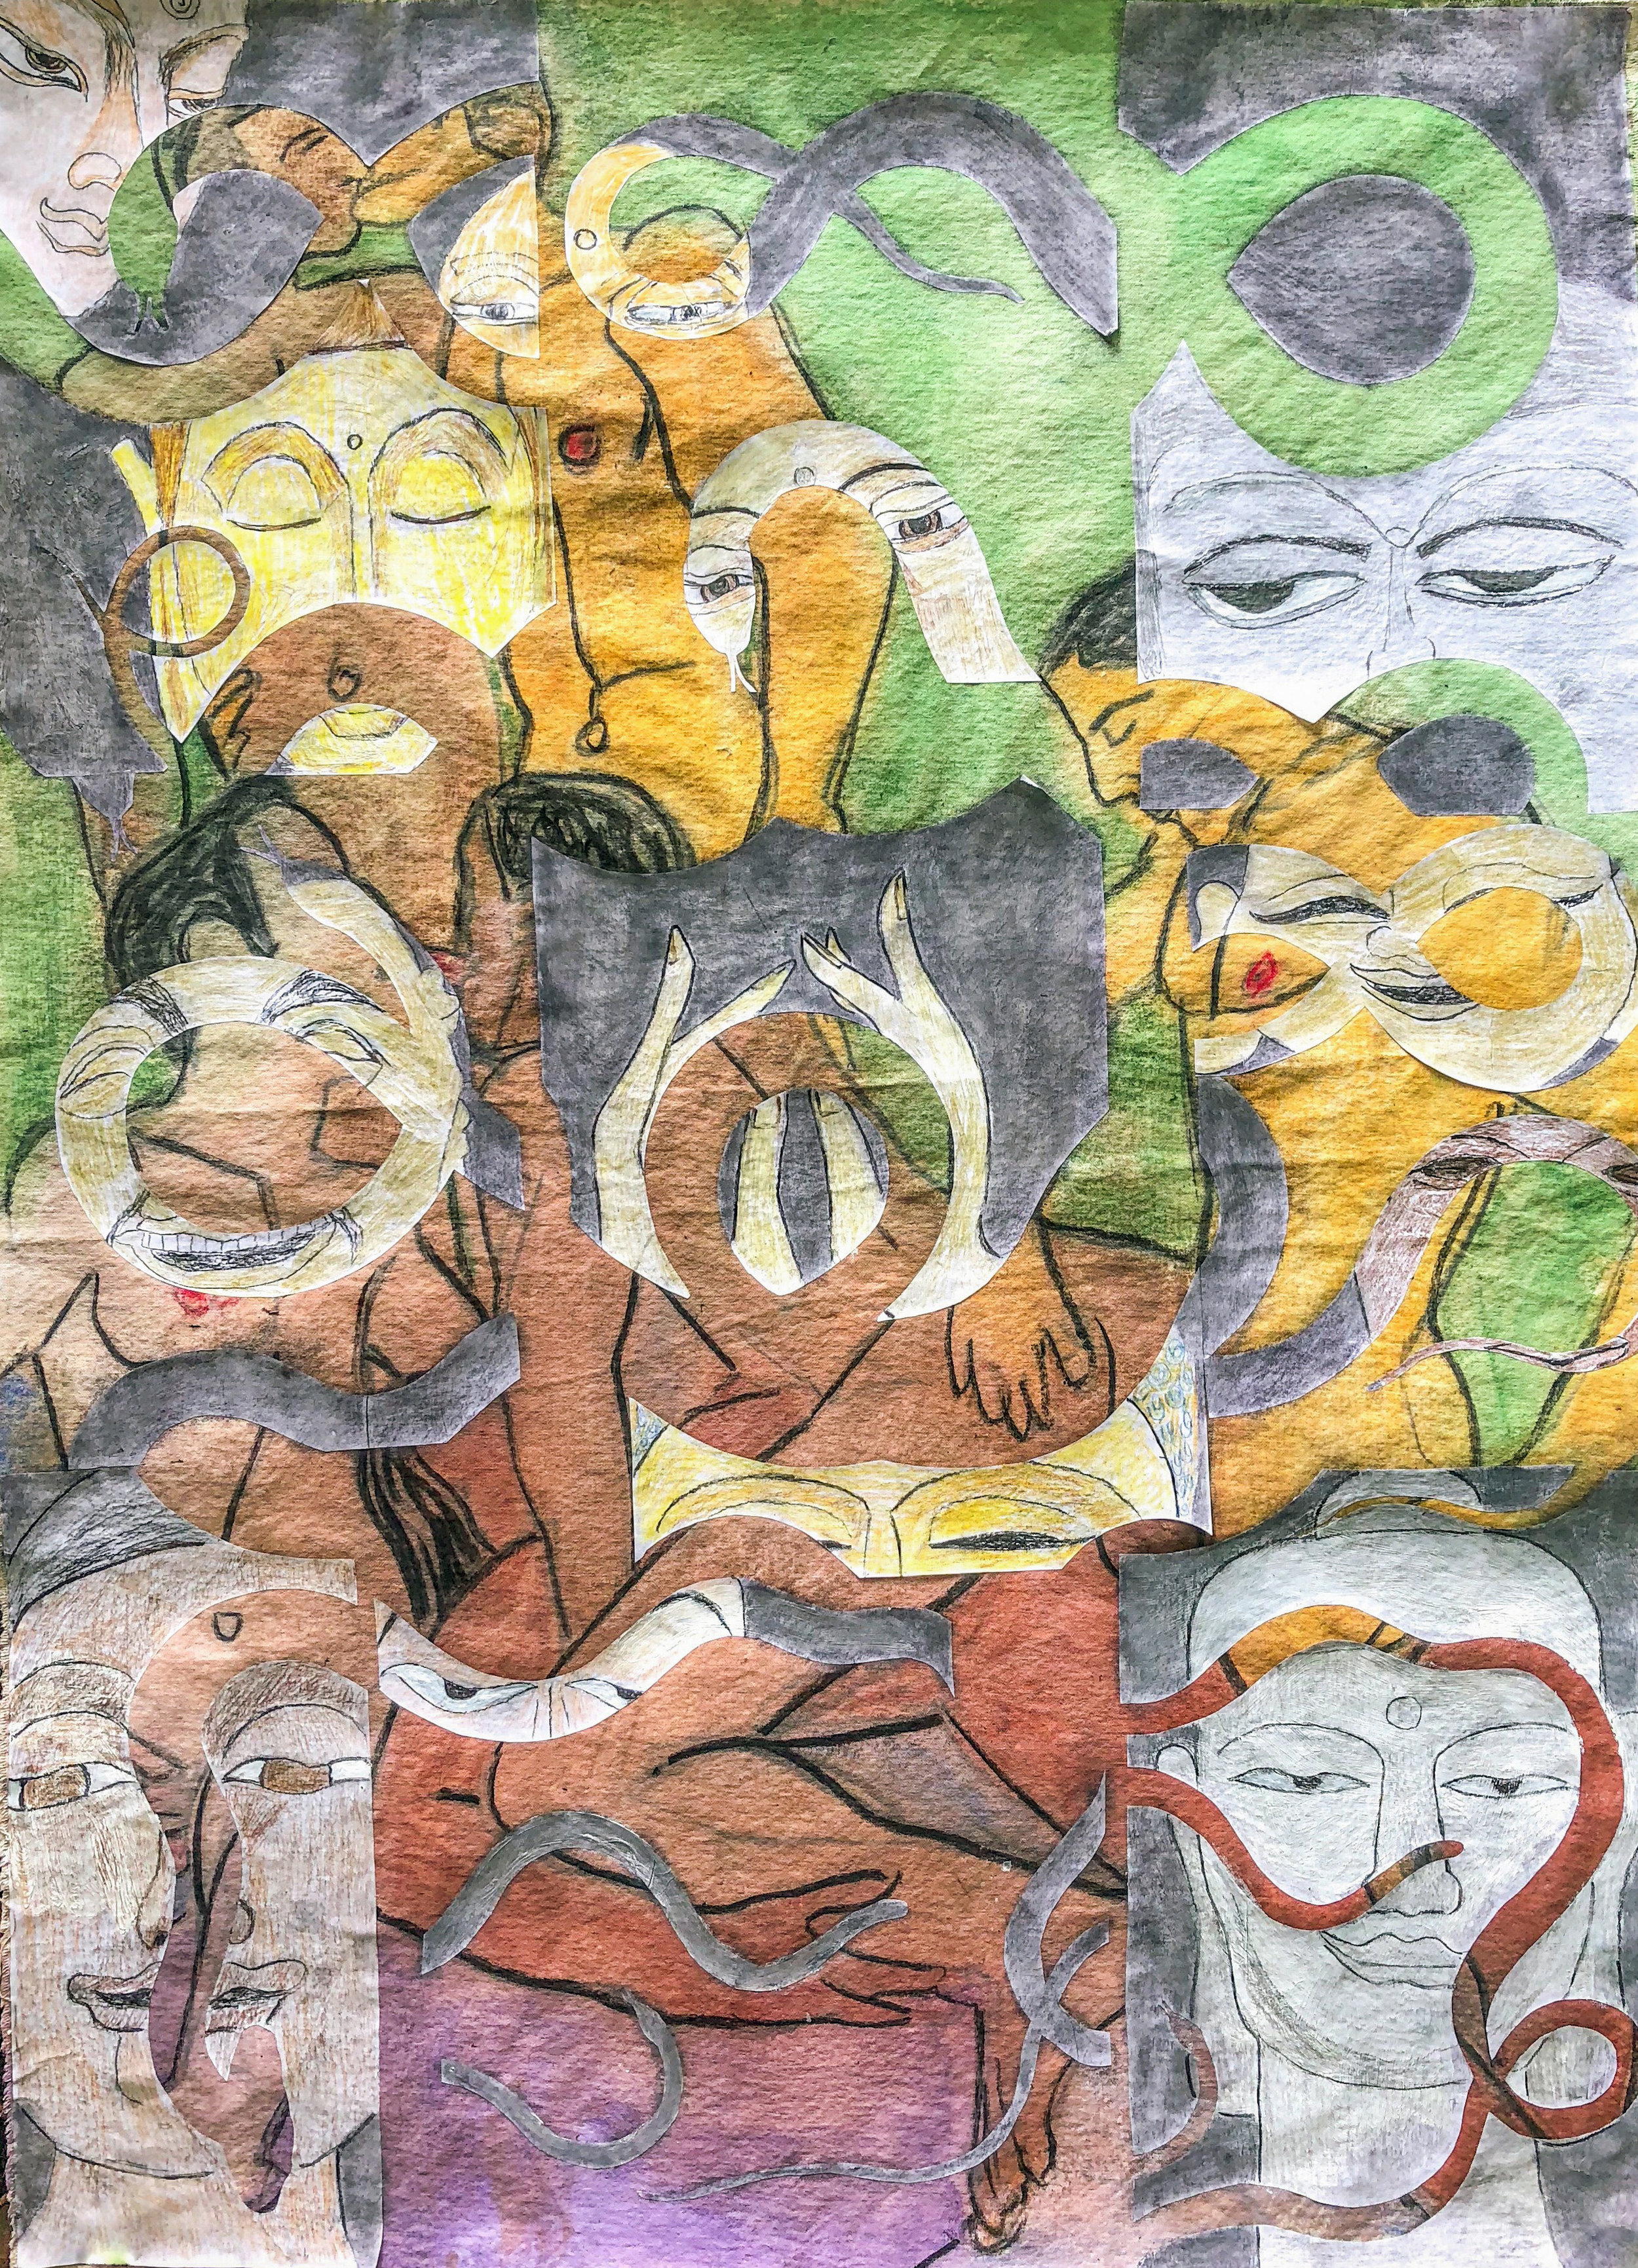 TonyMichaleEstrada - Future Buddhas 2 - 43 x 31.5 - pastel drawings on cuts outs on pastel drawing on canvas- 2018 - $700.jpg